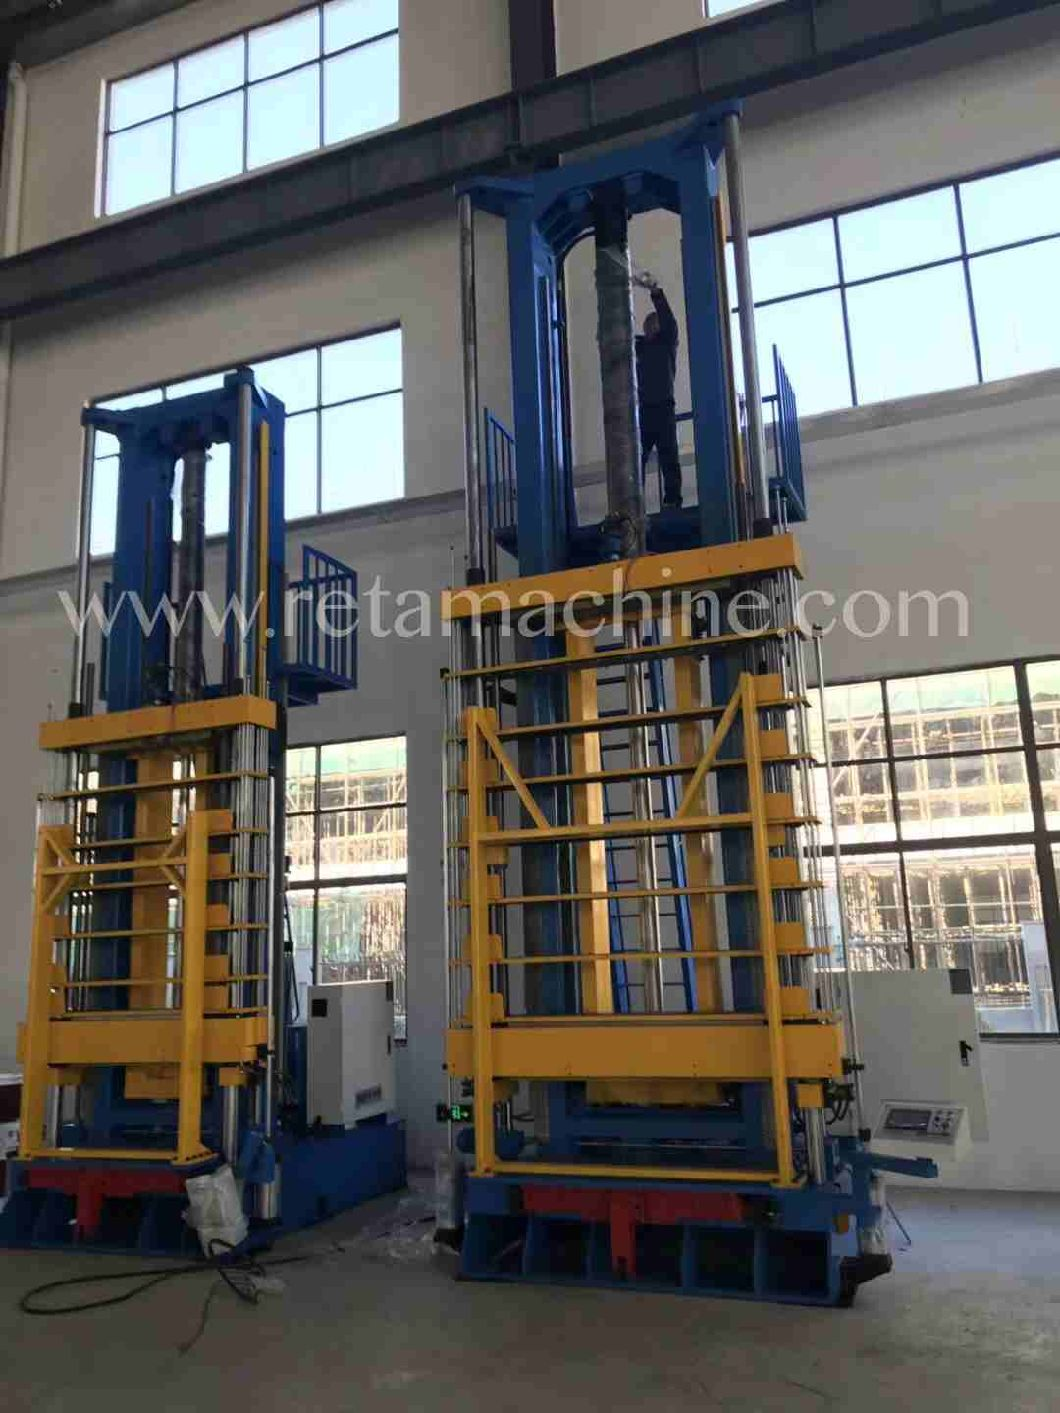 Hydraulic Vertical Expander for Heat Exchanger